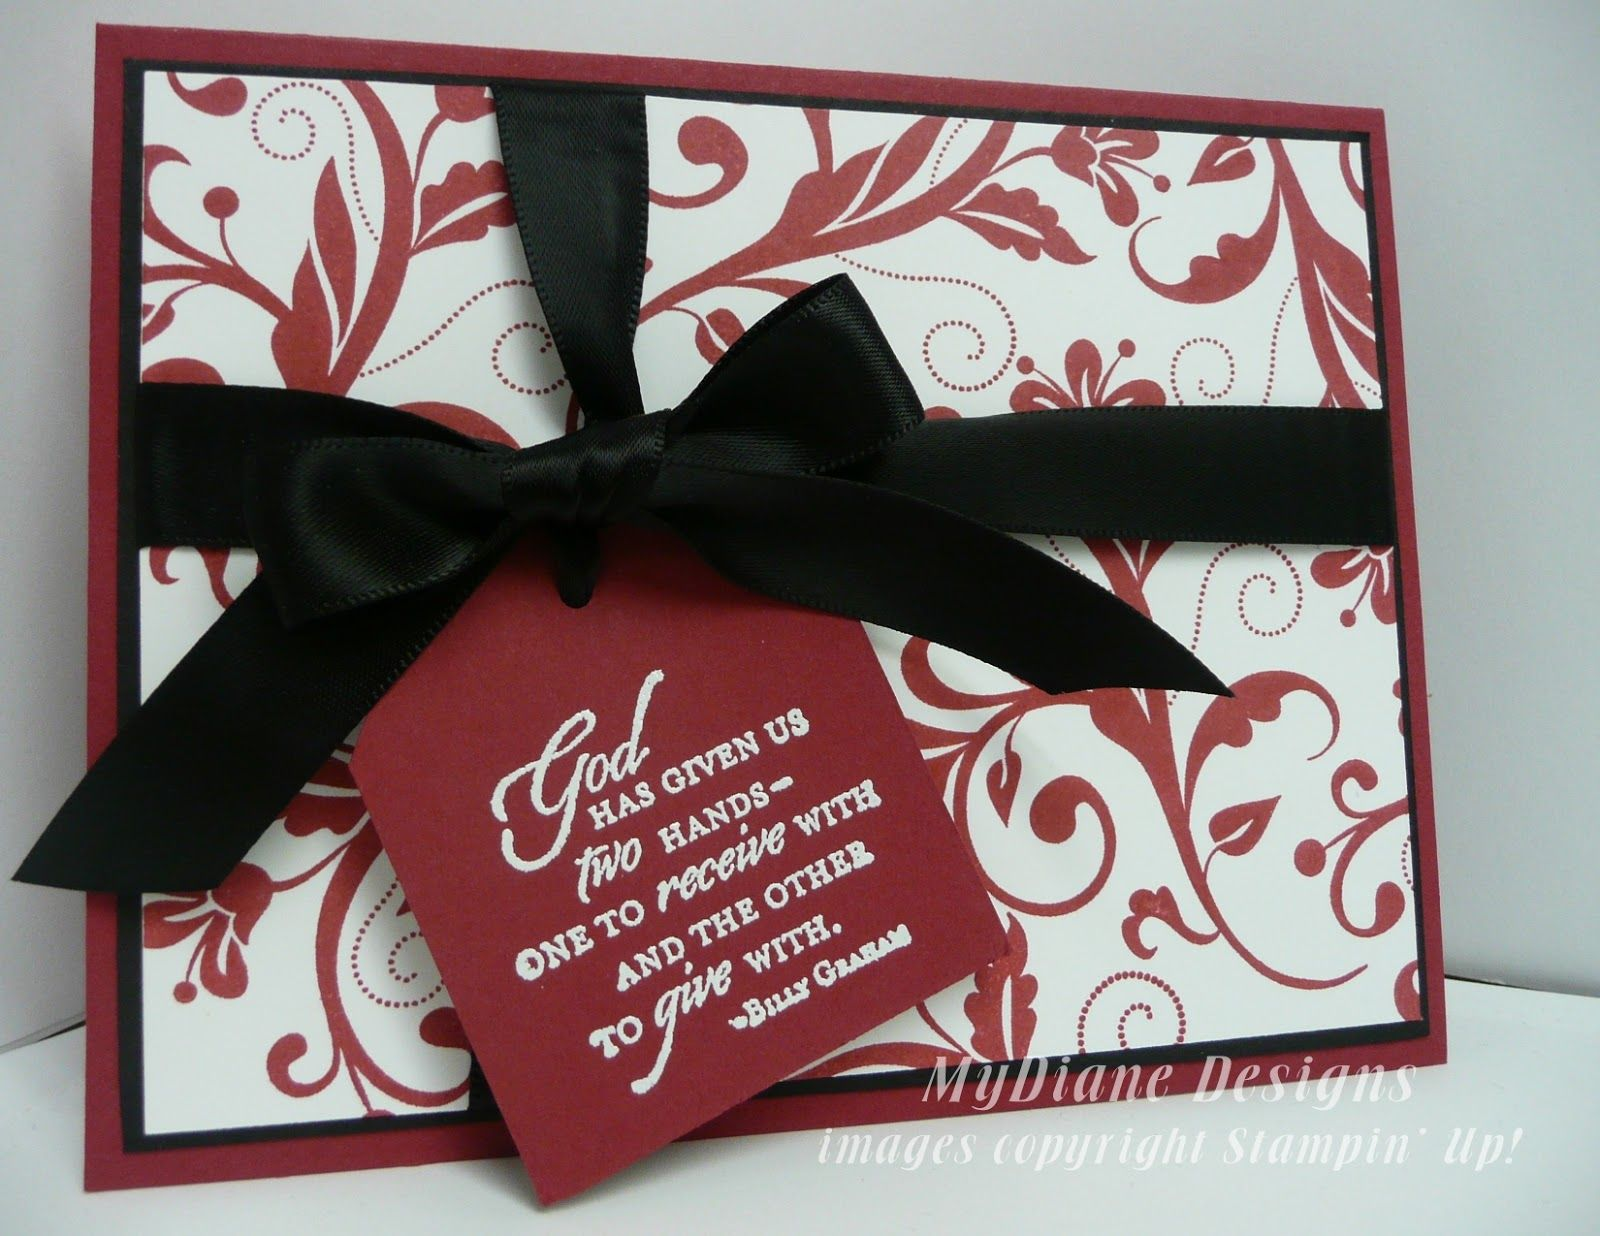 MyDiane Designs, Stampin Up, Flowering Flourishes, Trust God, handmade cards